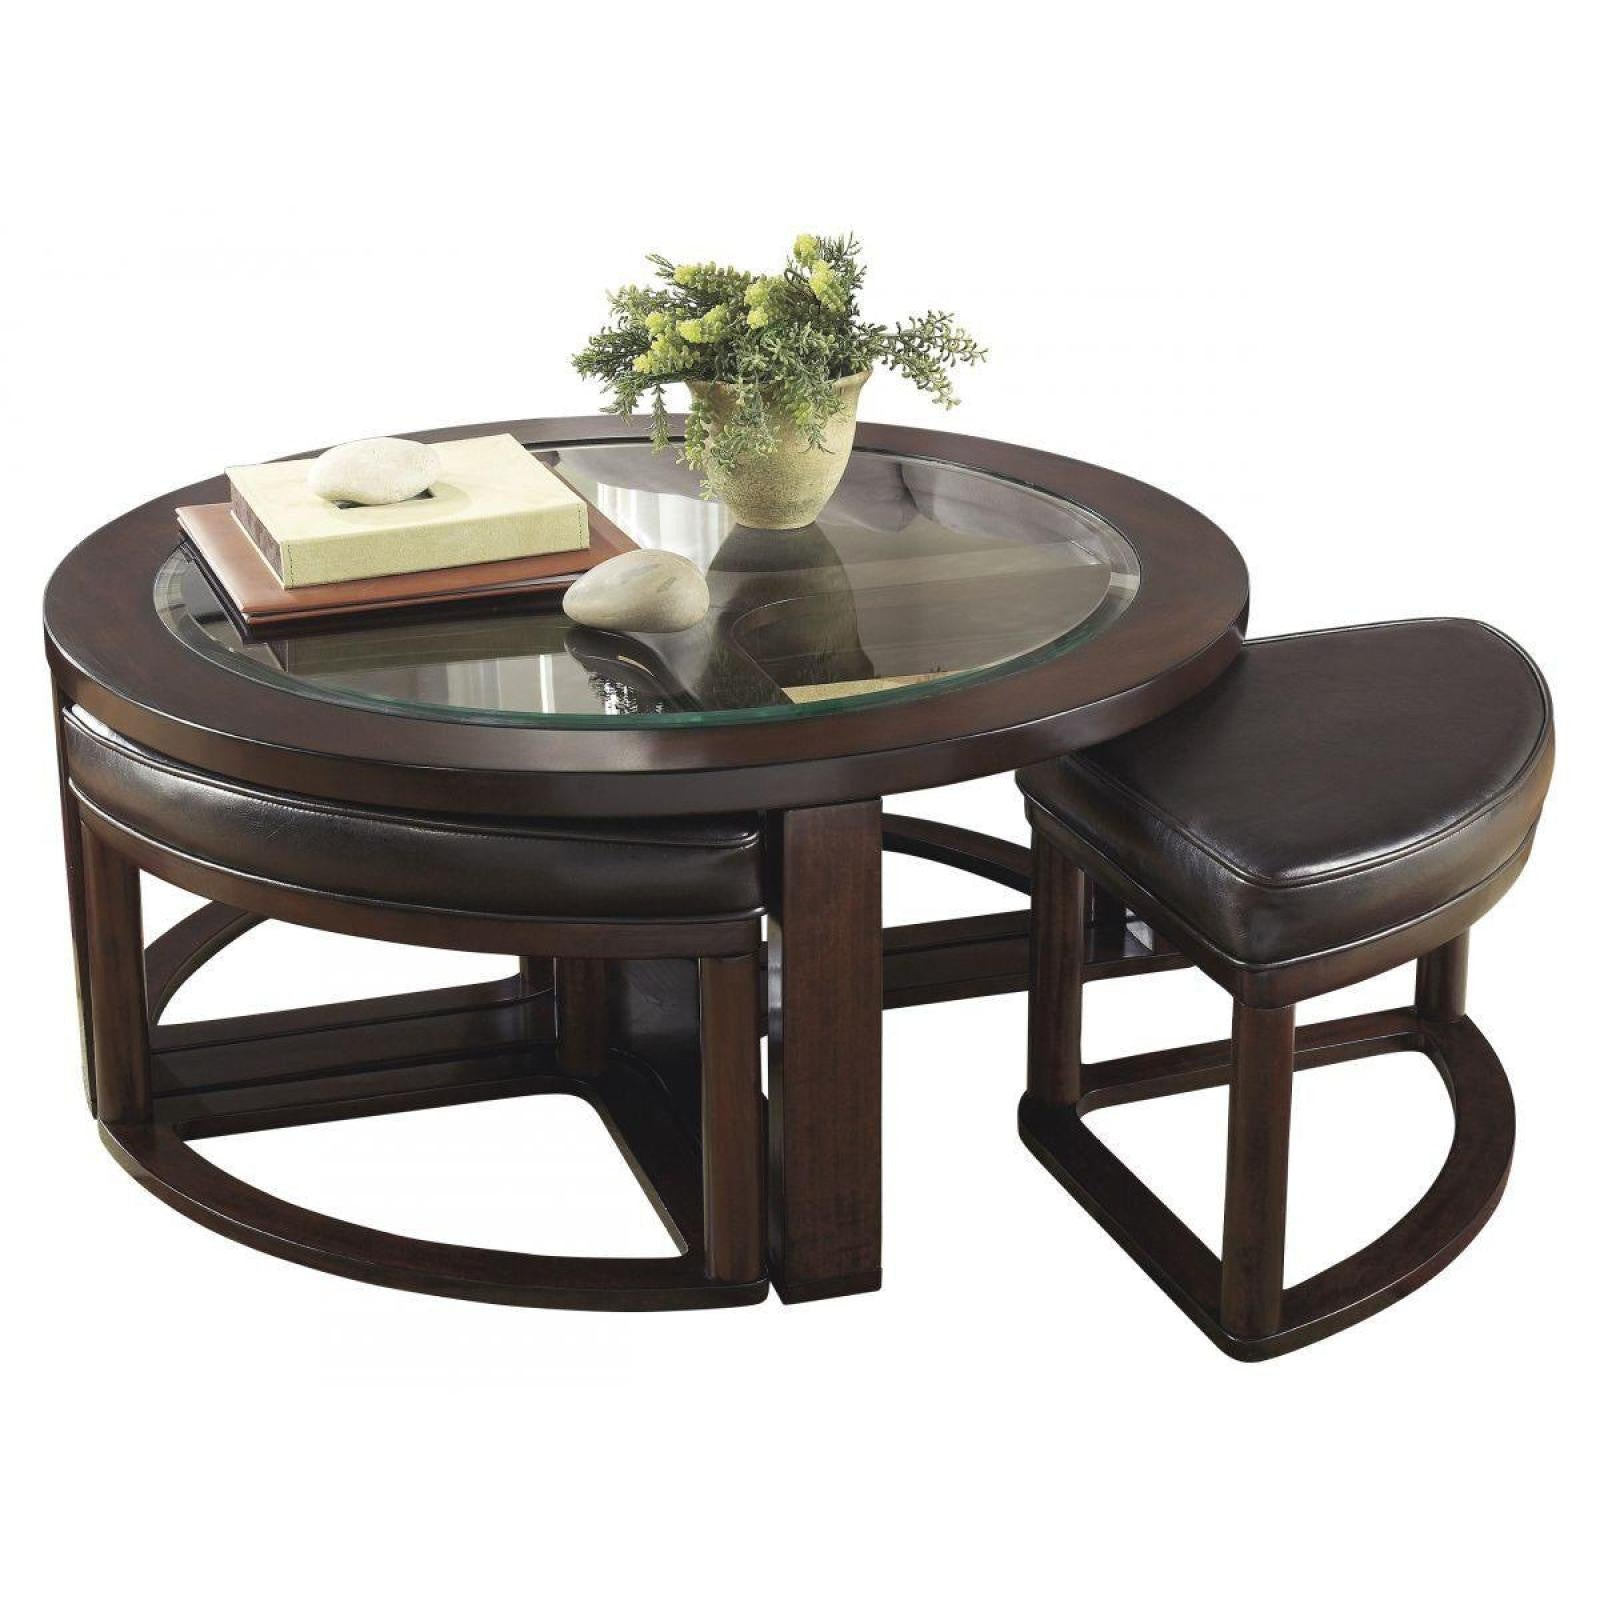 Round Table With Stools: Round Coffee Table With 4 Stools – Adams Furniture